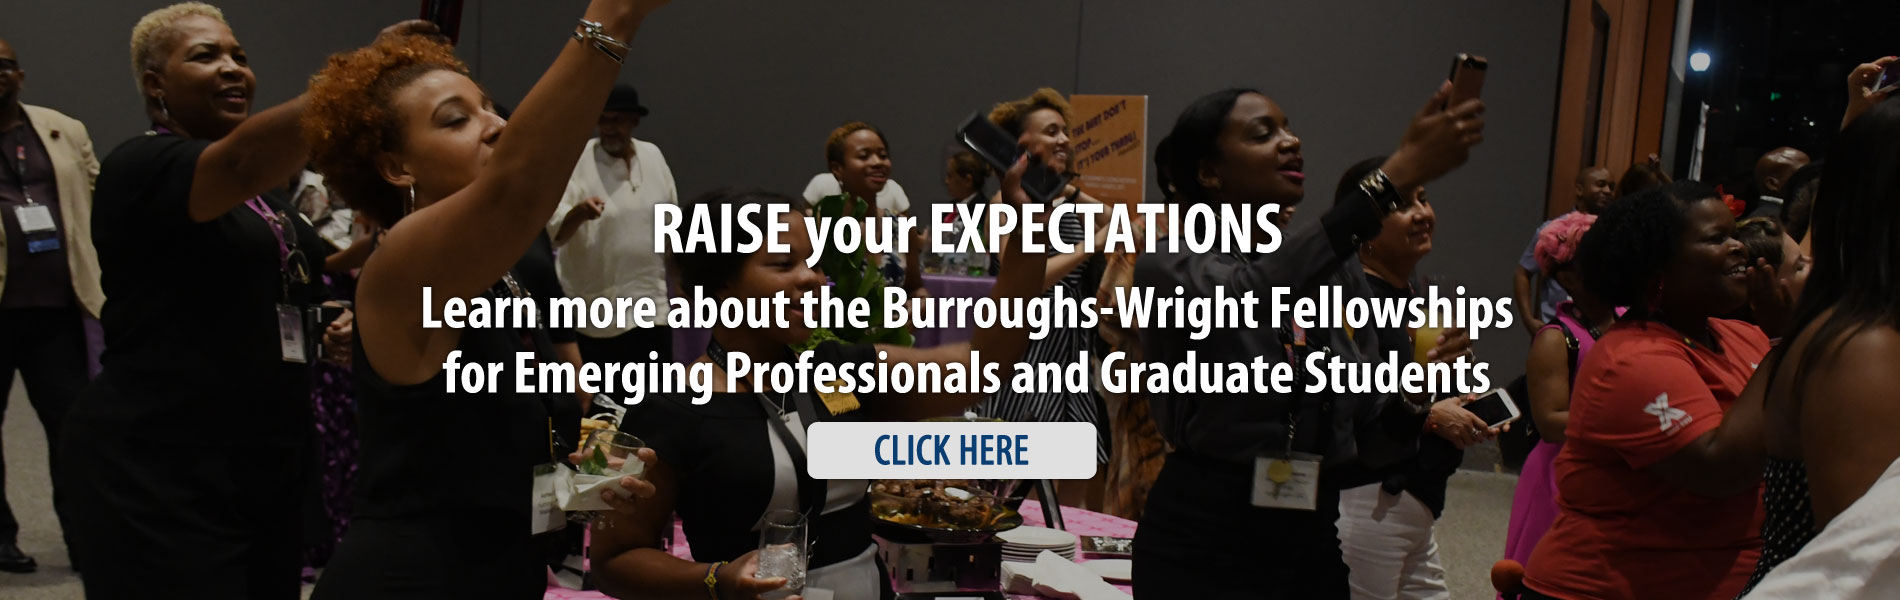 Margaret T. G. Burroughs and Charles H. Wright Fellowship